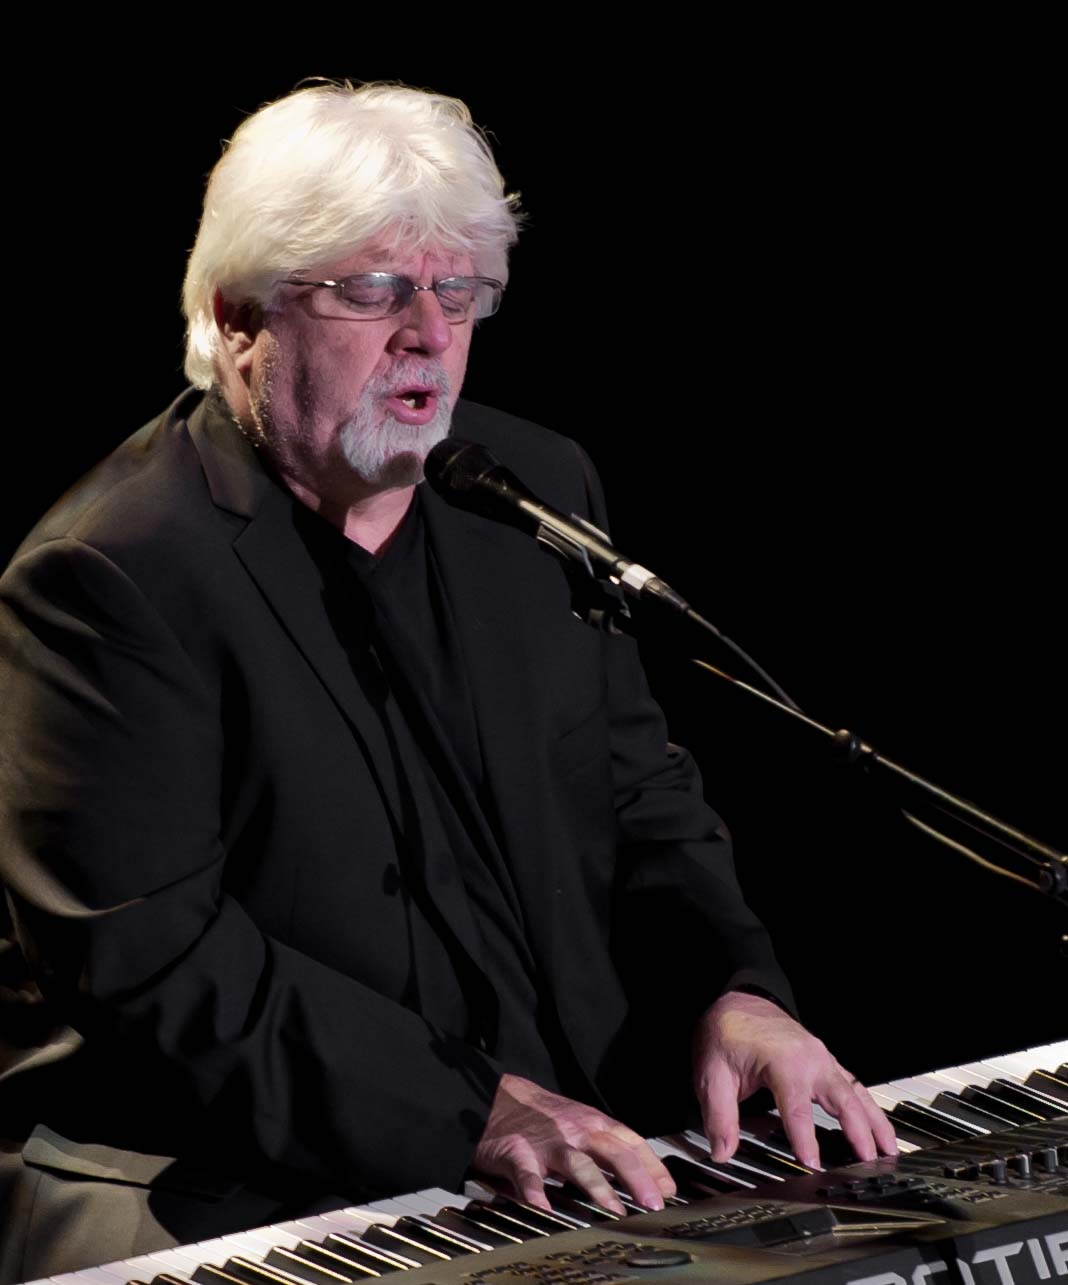 michael mcdonald wikimichael mcdonald ufc, michael mcdonald - sweet freedom, michael mcdonald - lonely teardrops, michael mcdonald - i keep forgettin', michael mcdonald i keep forgetting, michael mcdonald poker, michael mcdonald linkedin, michael mcdonald second job, michael mcdonald best, michael mcdonald on my own, michael mcdonald vs alex soto, michael mcdonald i keep forgettin lyrics, michael mcdonald discography, michael mcdonald tumblr, michael mcdonald & kenny loggins, michael mcdonald wiki, michael mcdonald live, michael mcdonald producer, michael mcdonald ringtones, michael mcdonald higher ground